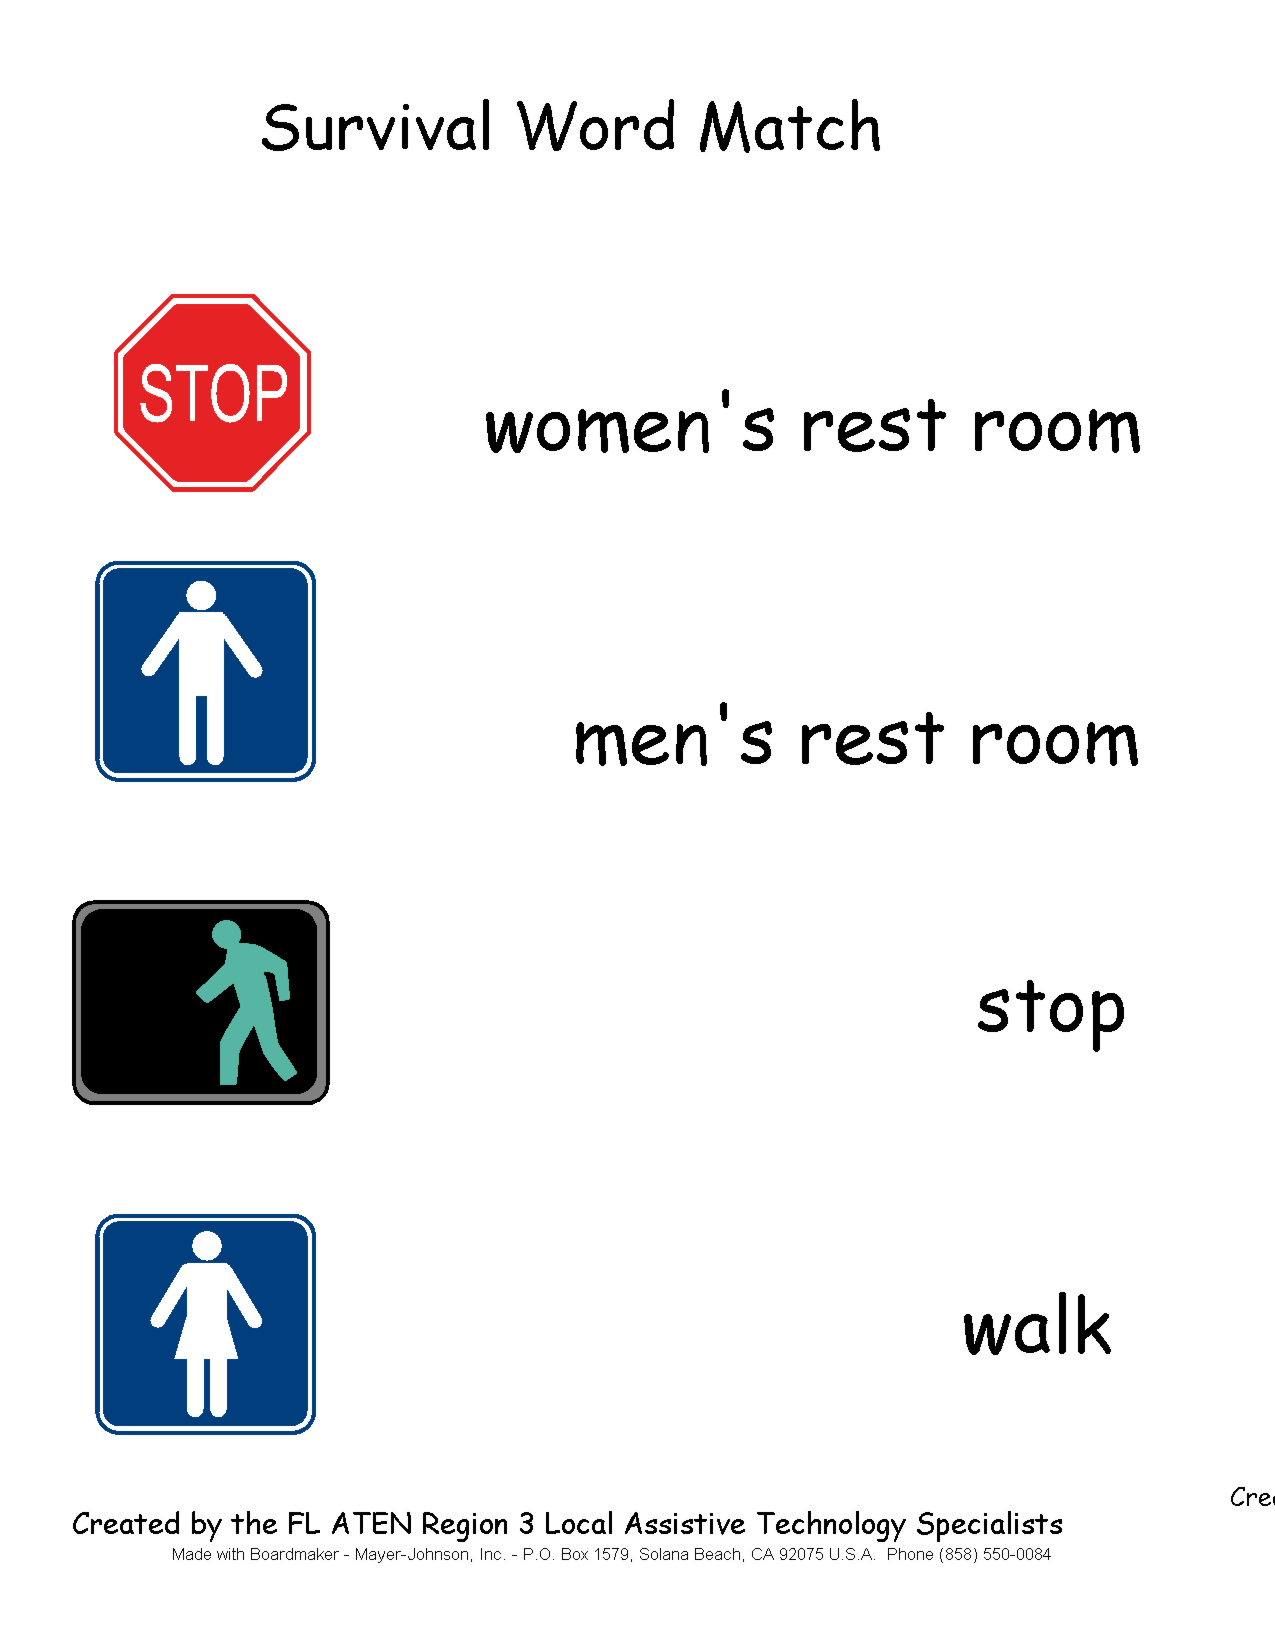 6 Best Images of Printable Community Signs - Community Safety Signs and Symbols, Free Printable ...